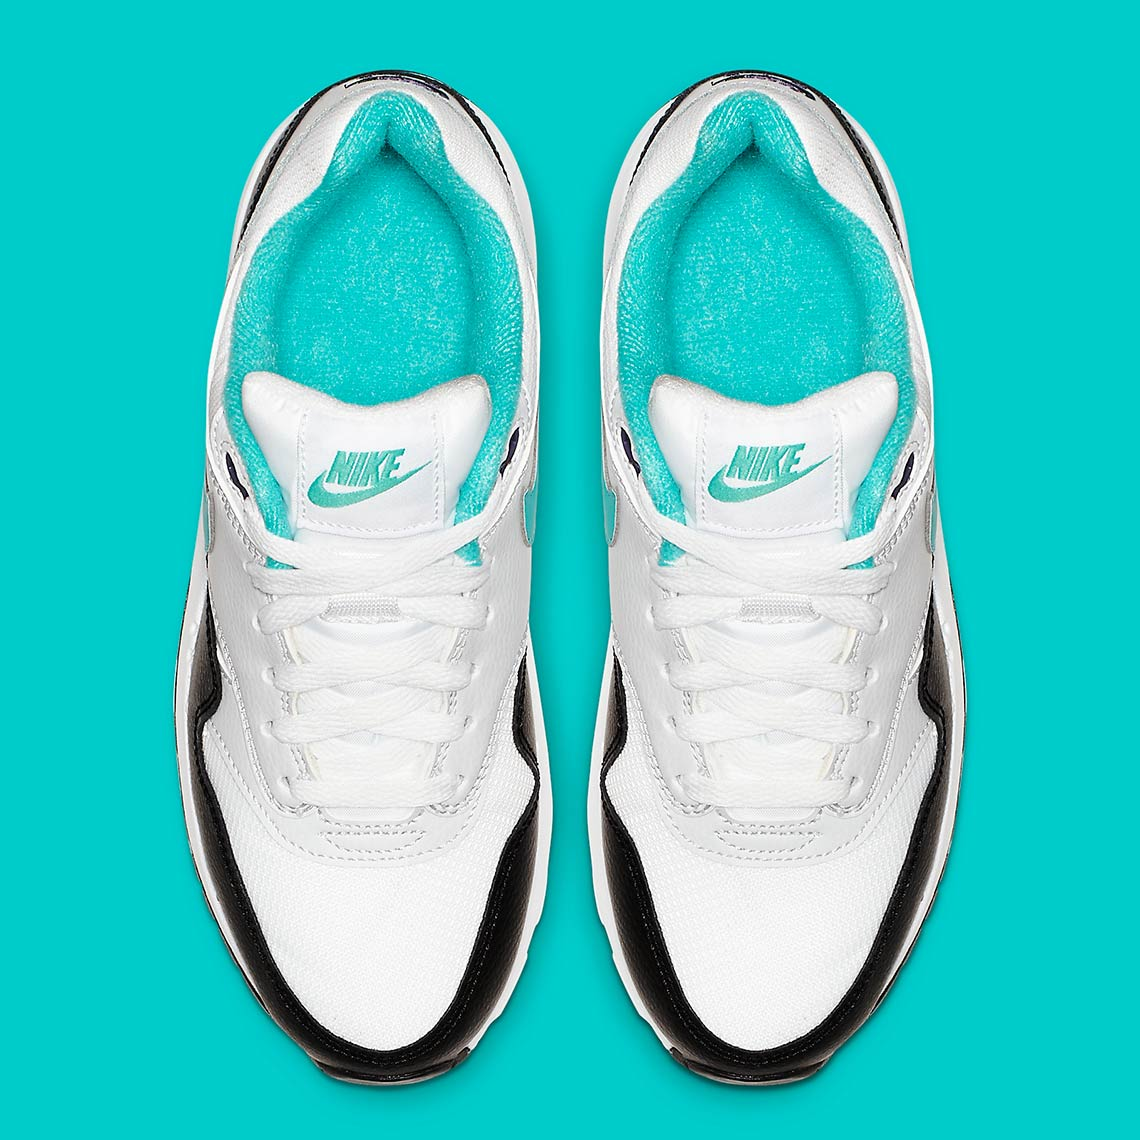 """official photos 91db1 7313e The Kids' Nike Air Max 1 Gets A Classic """"Dusty Cactus ..."""